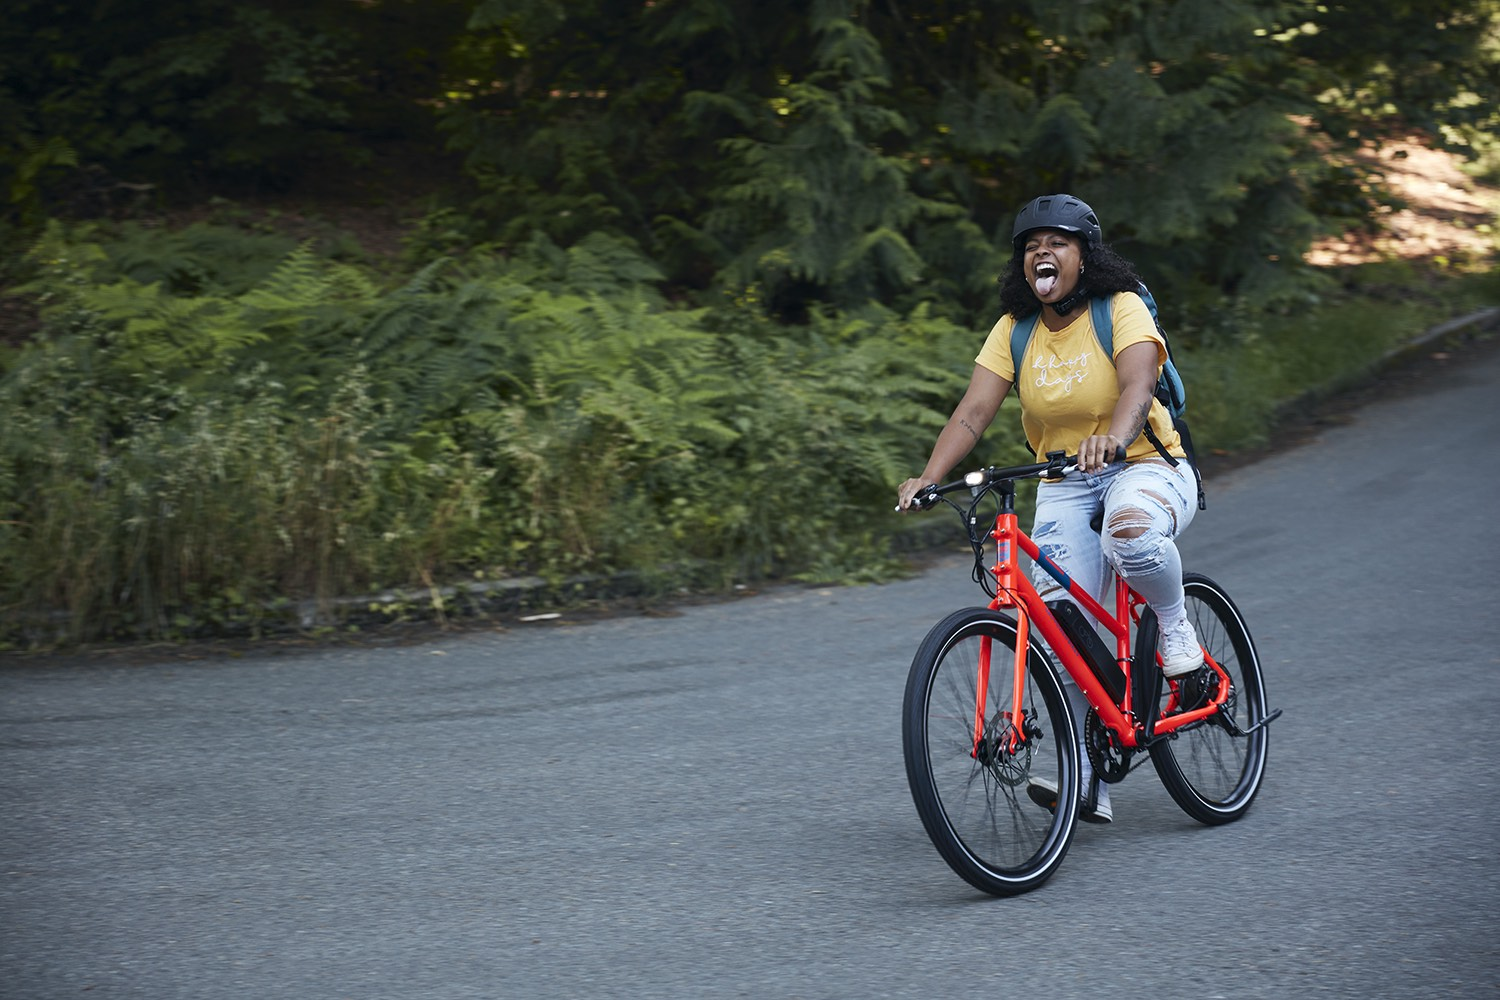 A woman has fun while riding a RadMission down the street.